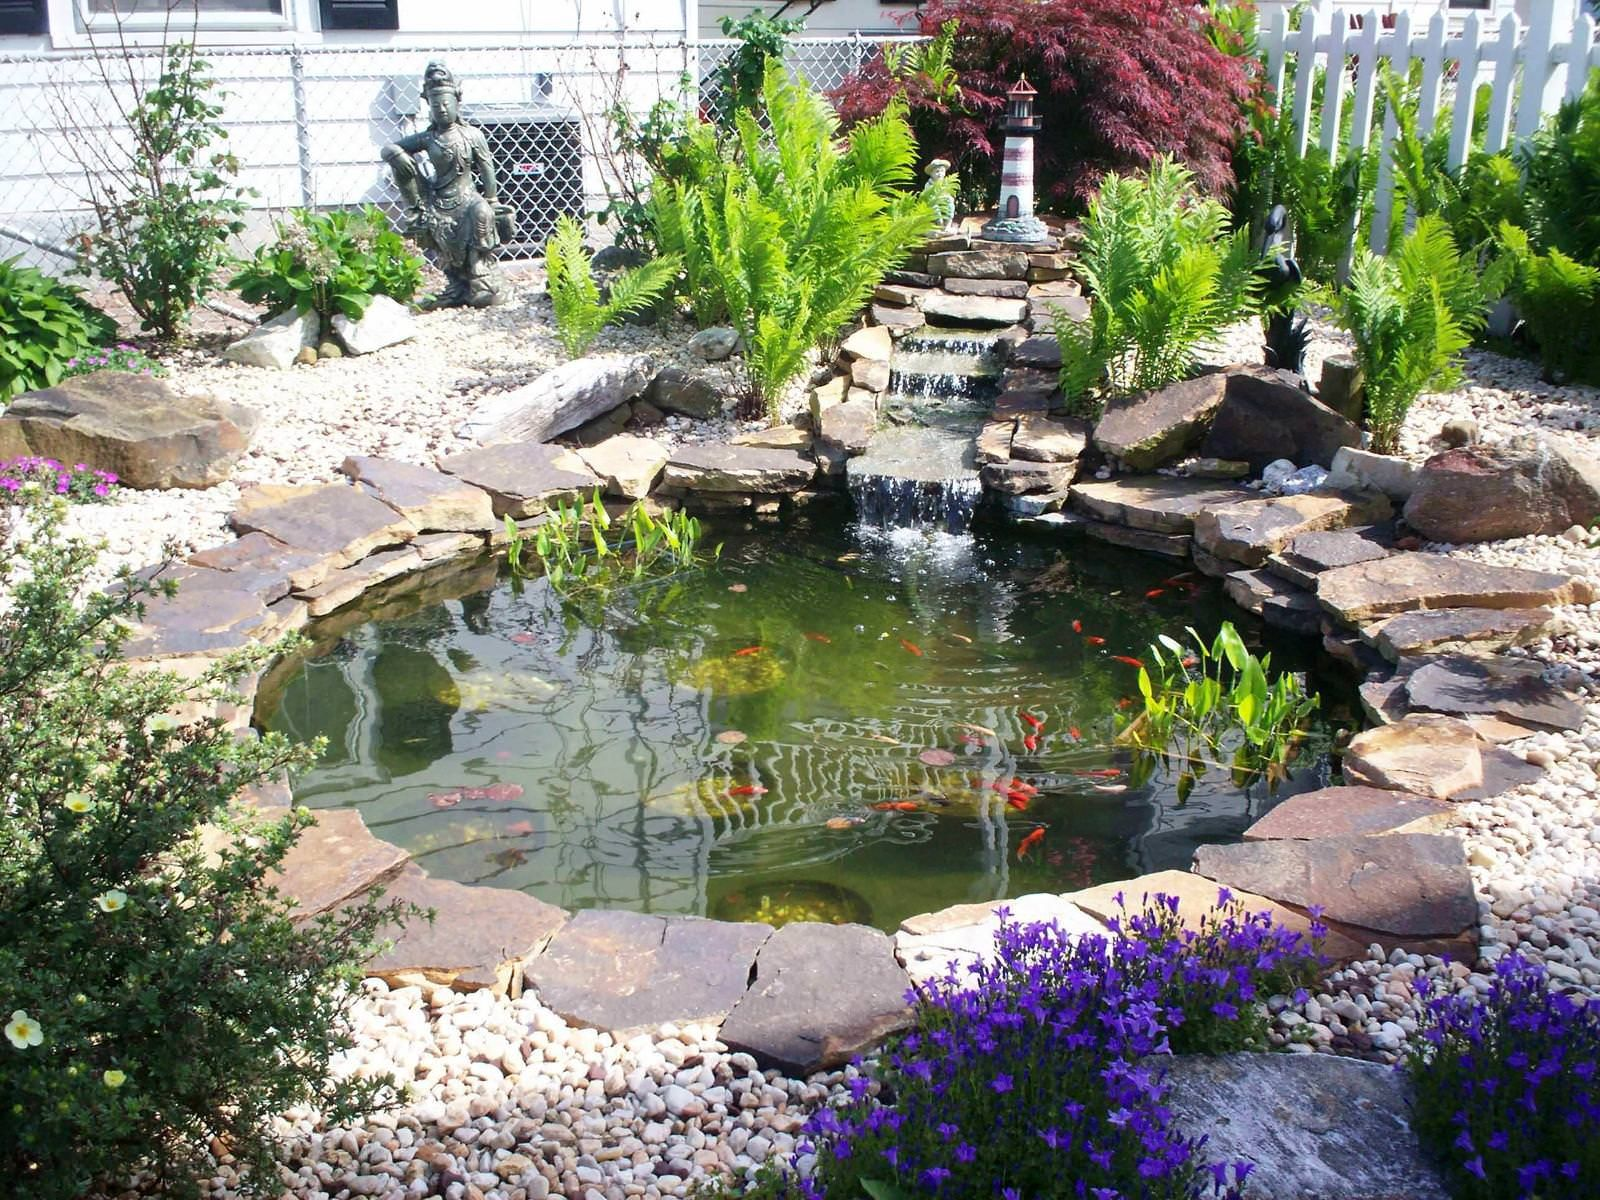 Small garden or backyard aquarium ideas practic ideas for Outdoor pond ideas